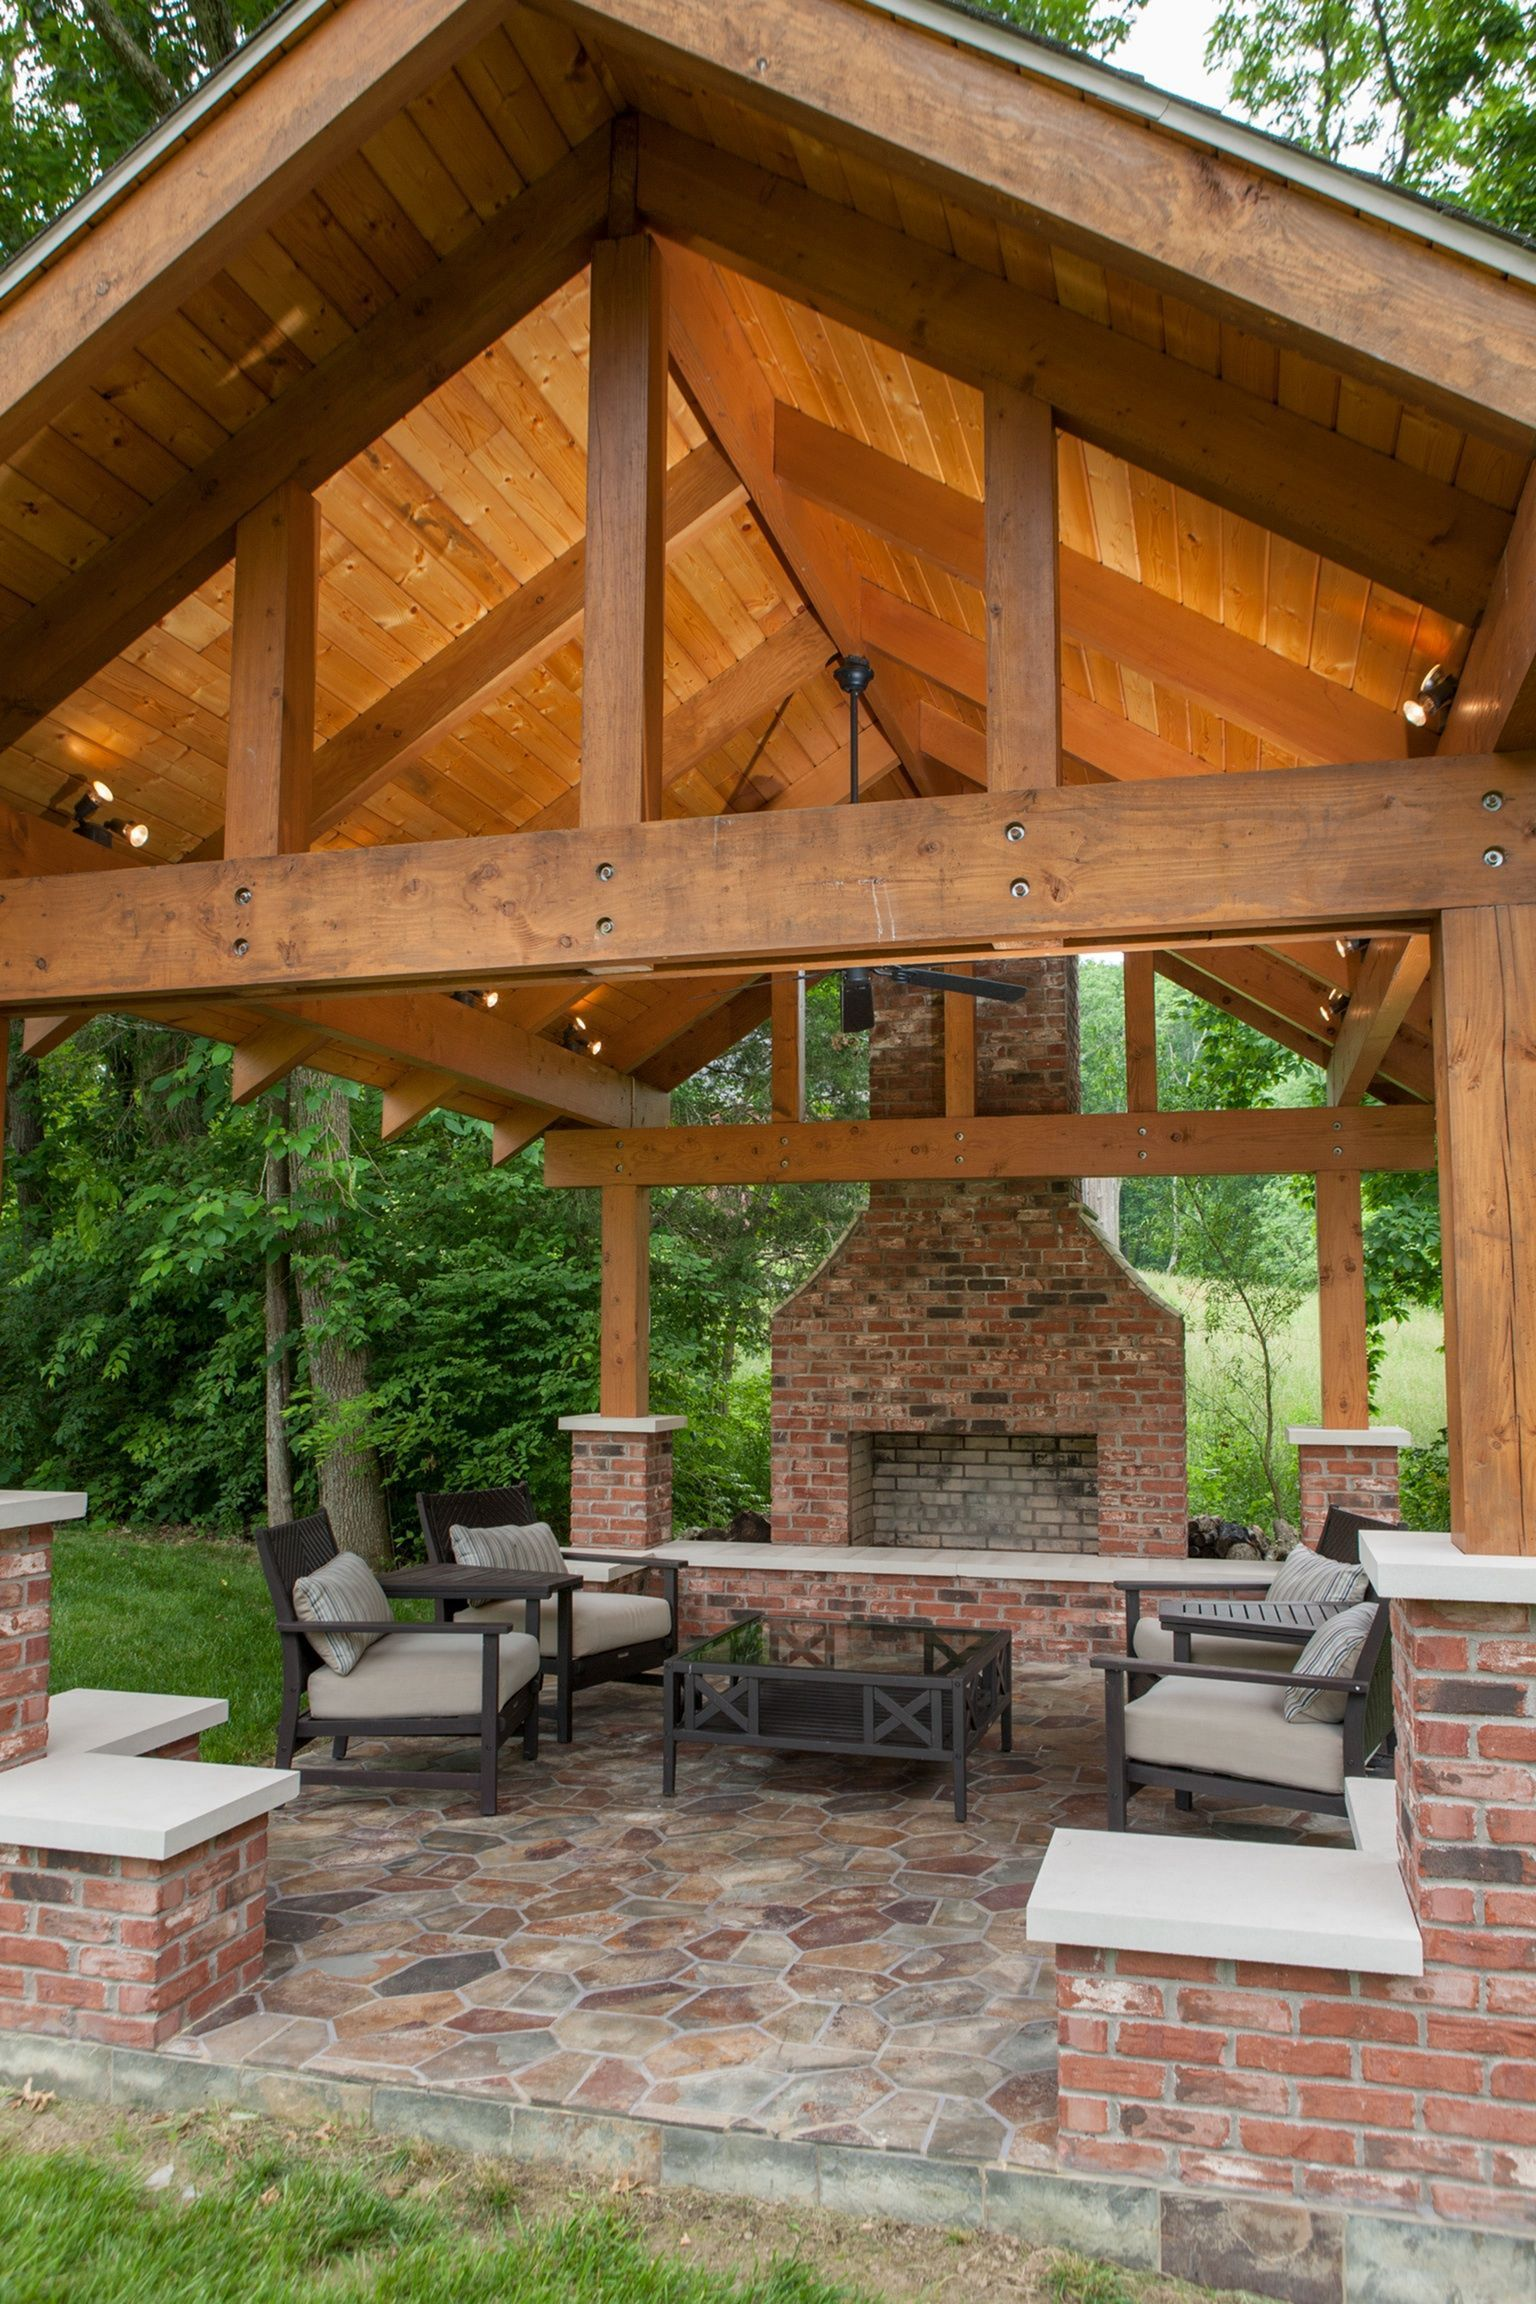 15 Lovely Outdoor Fireplace Ideas For Your Home Outdoor Backyard Pavilion Outdoor Pavilion Backyard Patio Designs